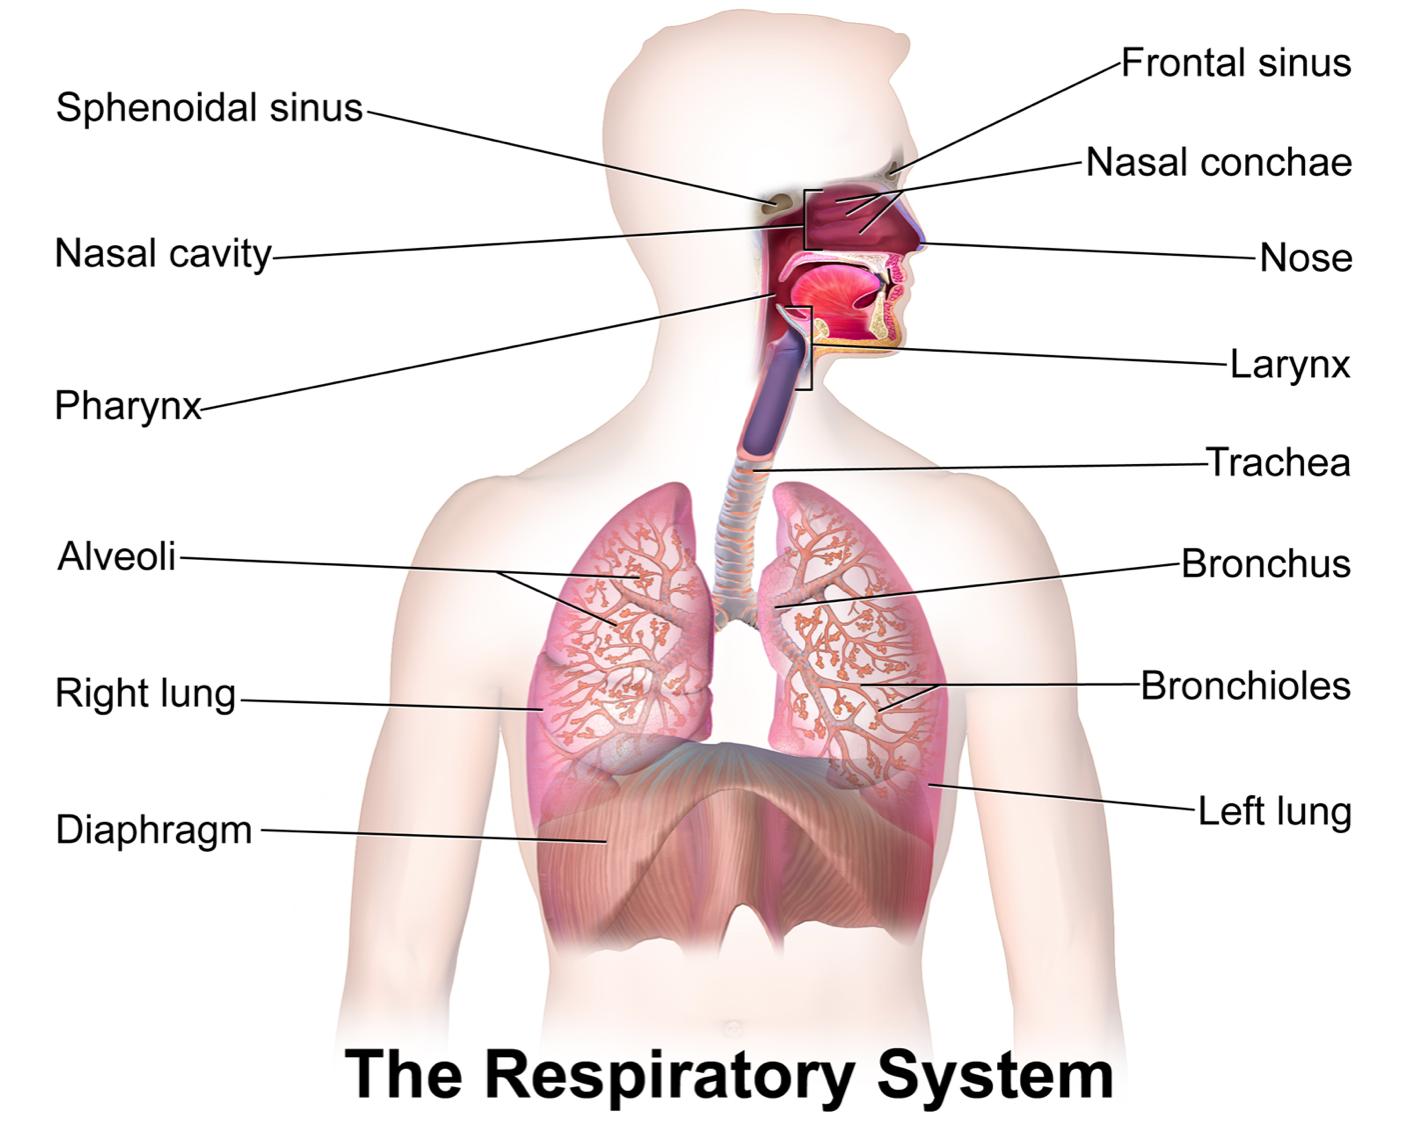 labeled diagram of the lungs/respiratory system., Human Body